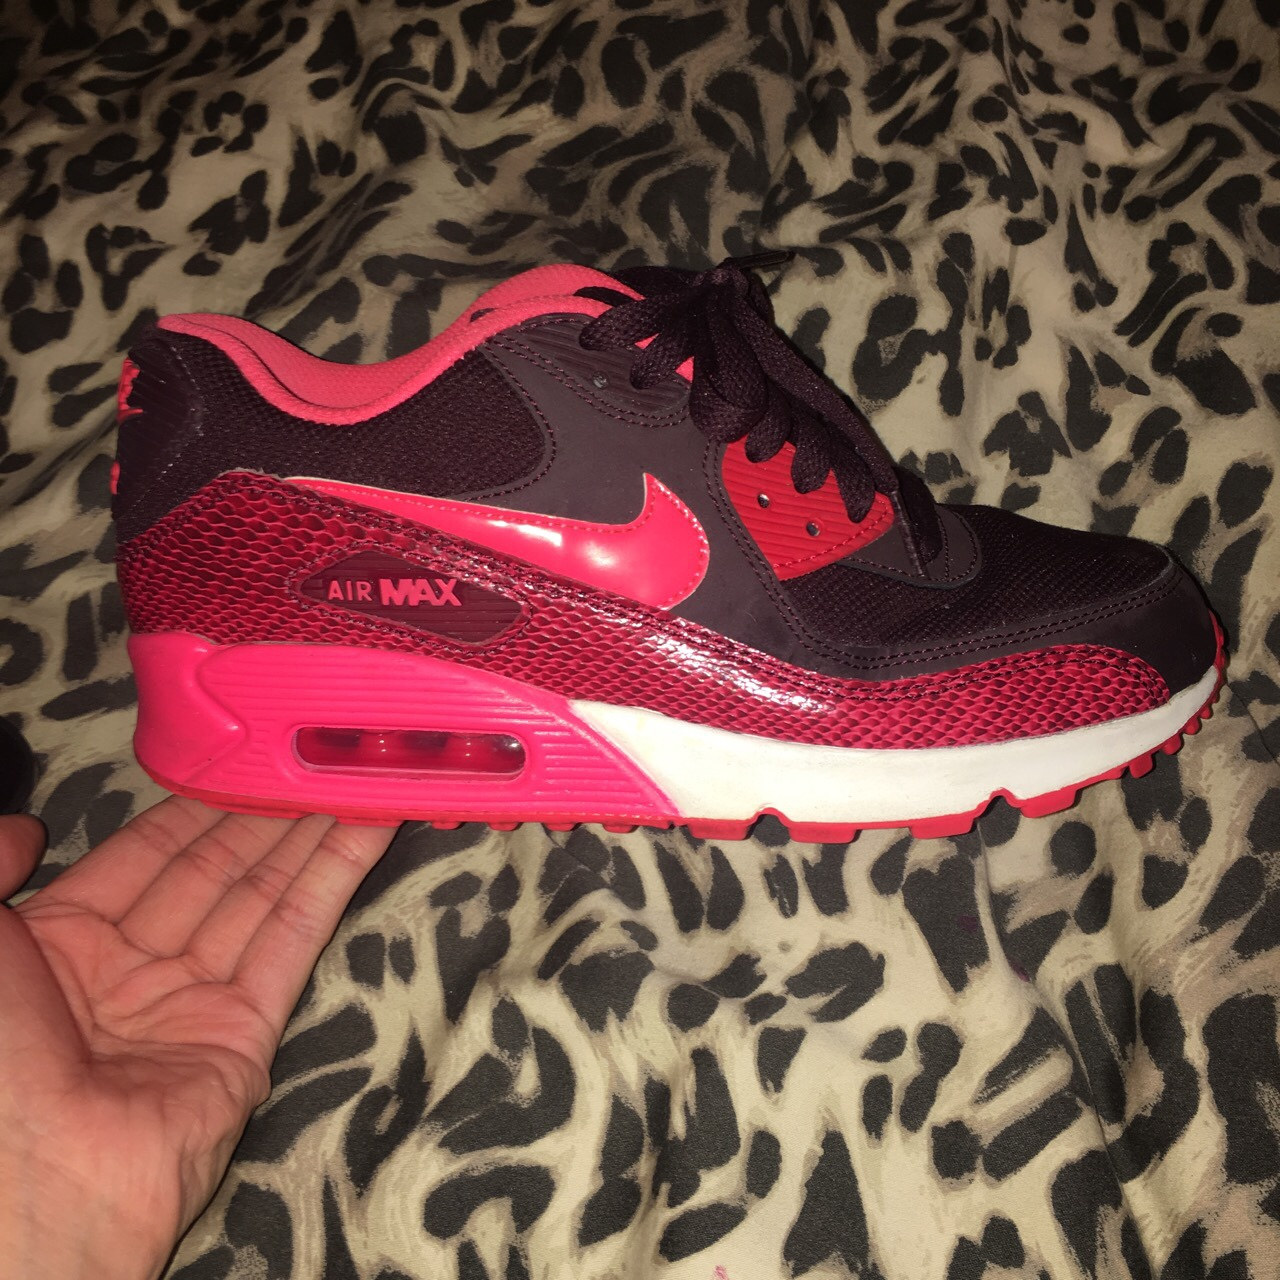 Nike Air Max 90 Limited Edition women's